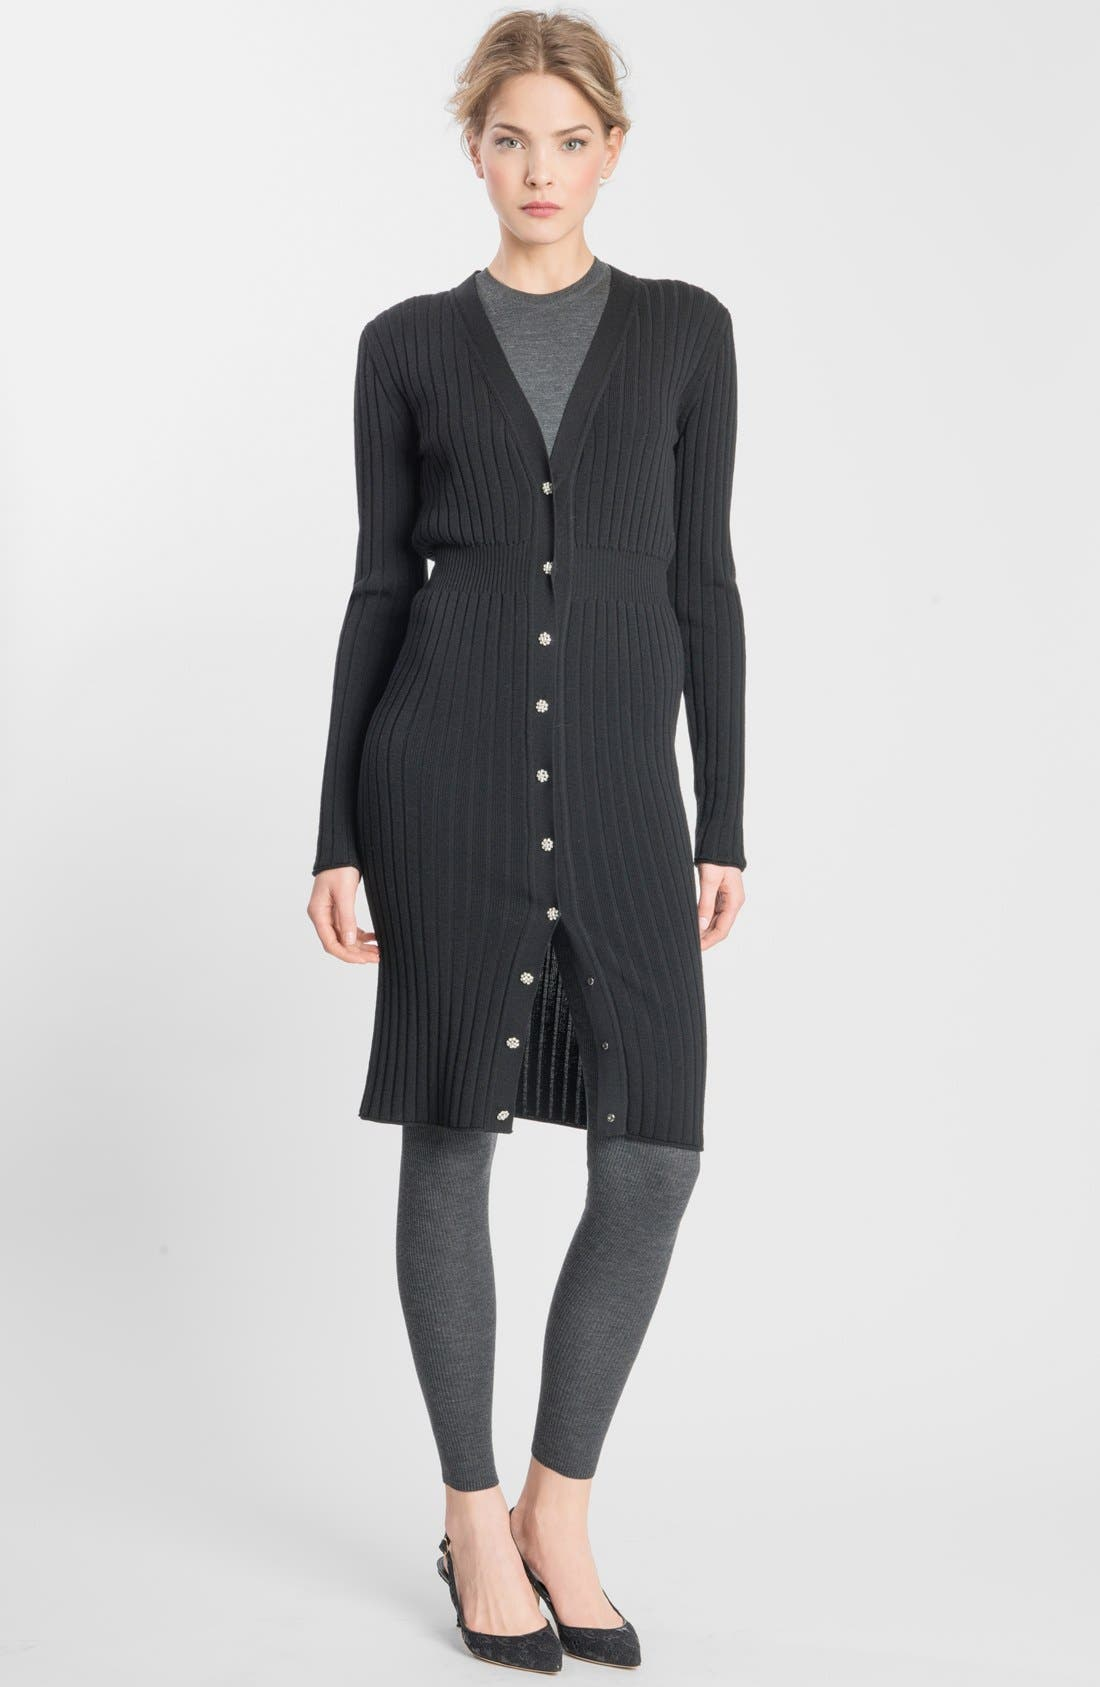 Alternate Image 1 Selected - Dolce&Gabbana Crystal Button Ribbed Wool Sweater Dress